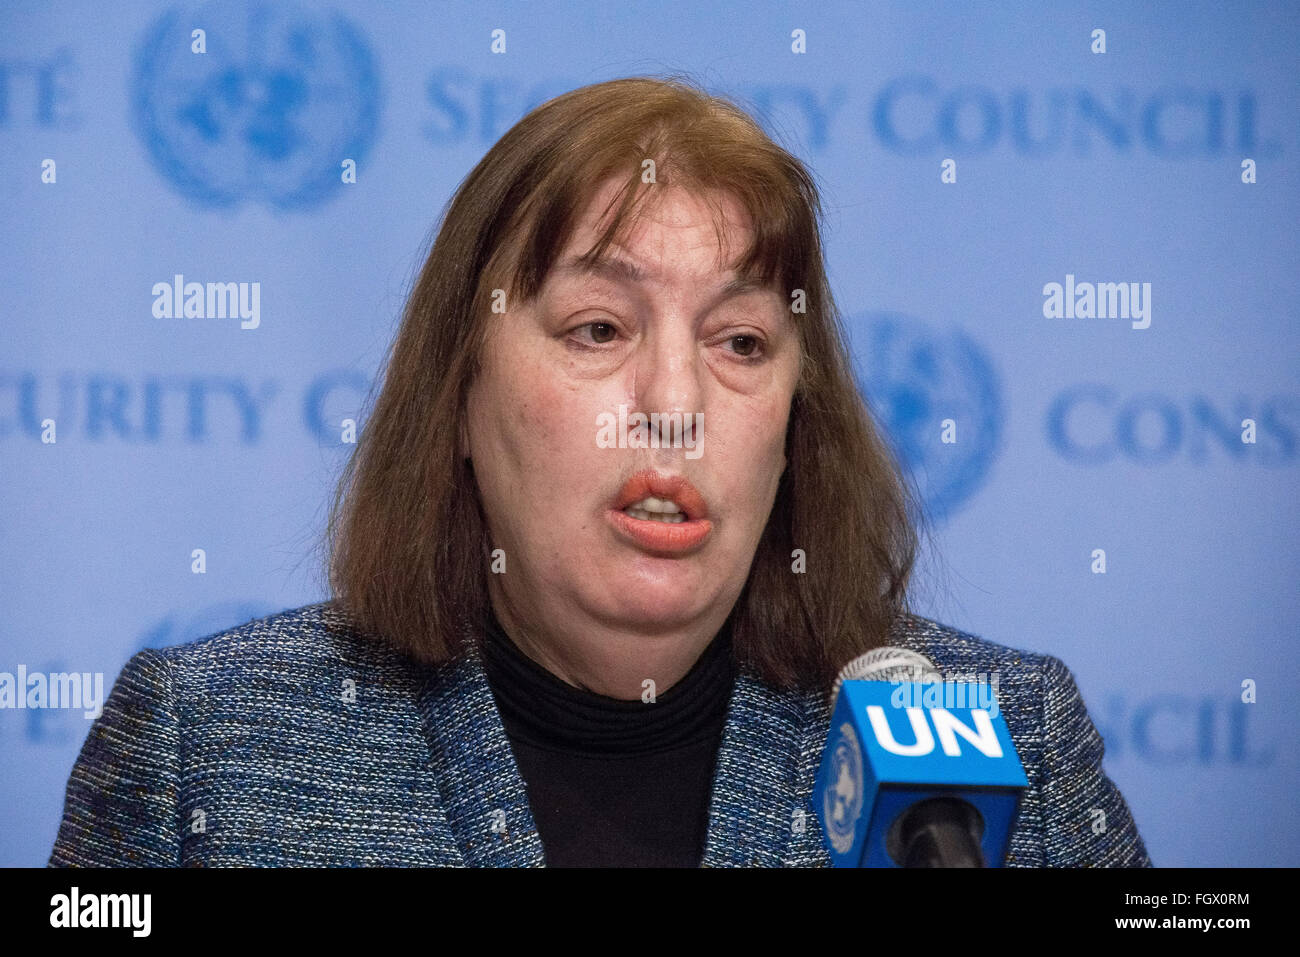 New York United States 22nd Feb 2016 Virginia Gamba Head Of The Meccanism Long Syiria Three Person Panel Comprising Joint Investigative Mechanism Speaks To Press